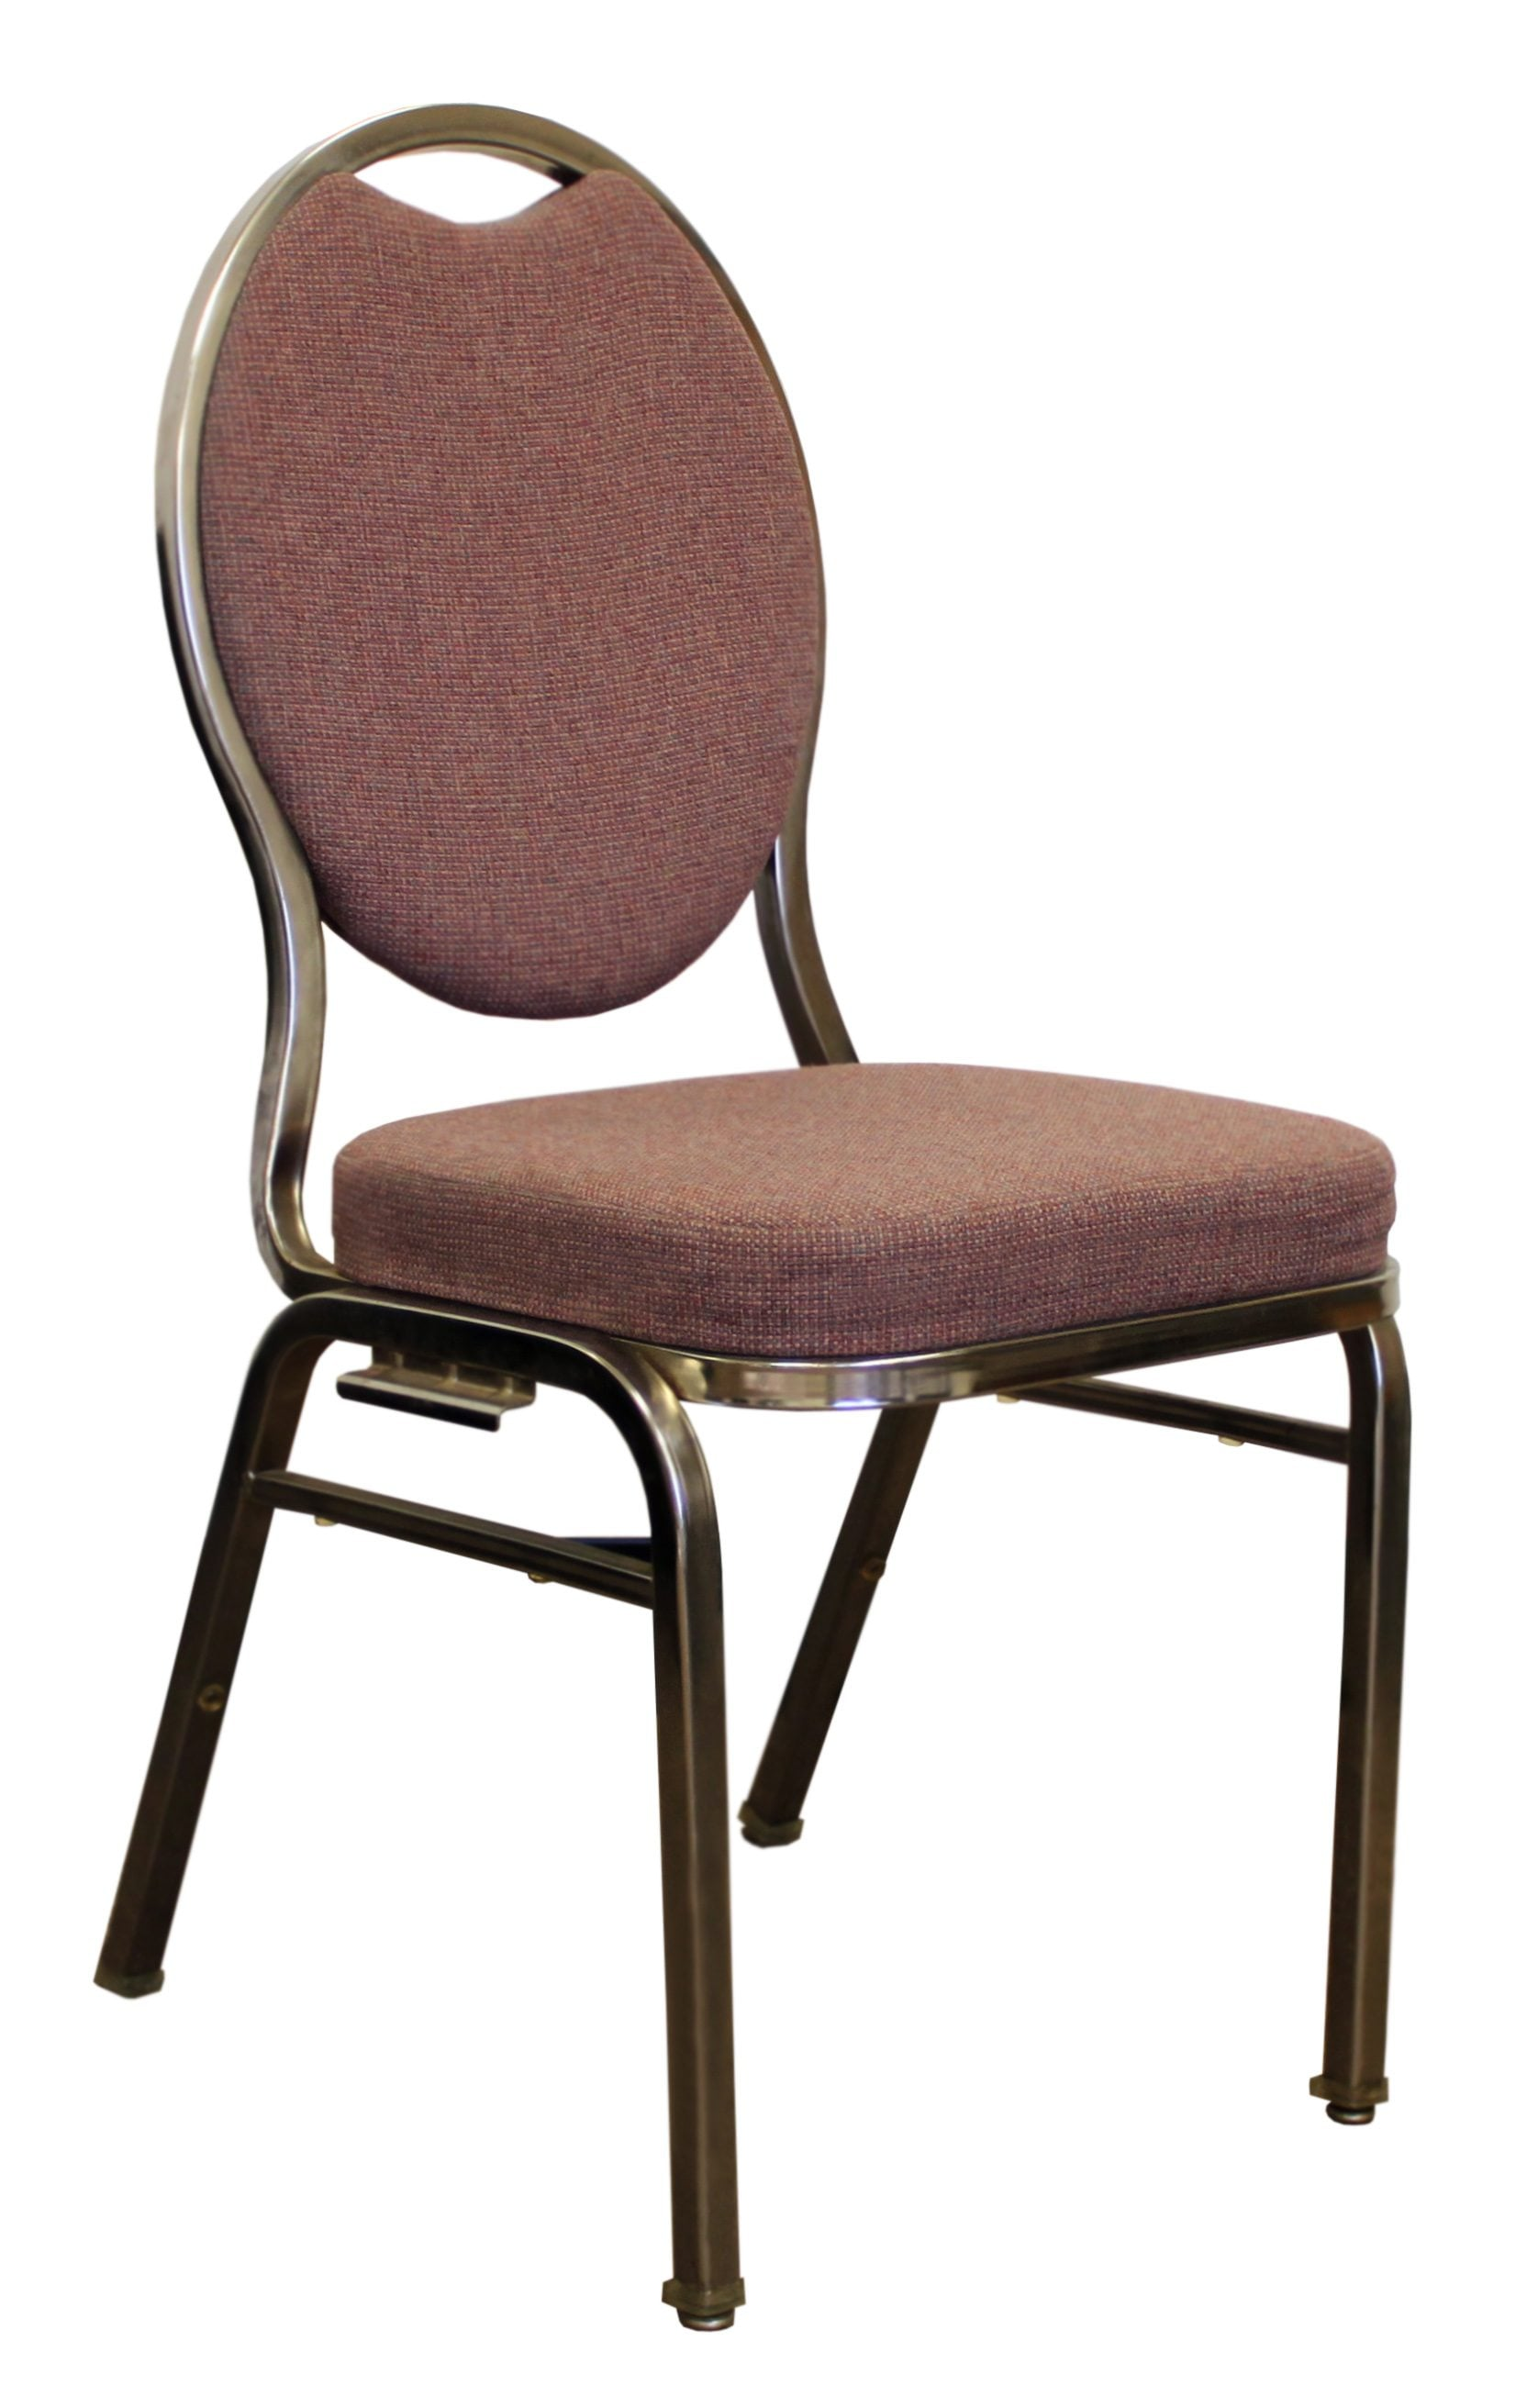 upholstered stacking chairs pc game chair virco commercial grade used stack mauve